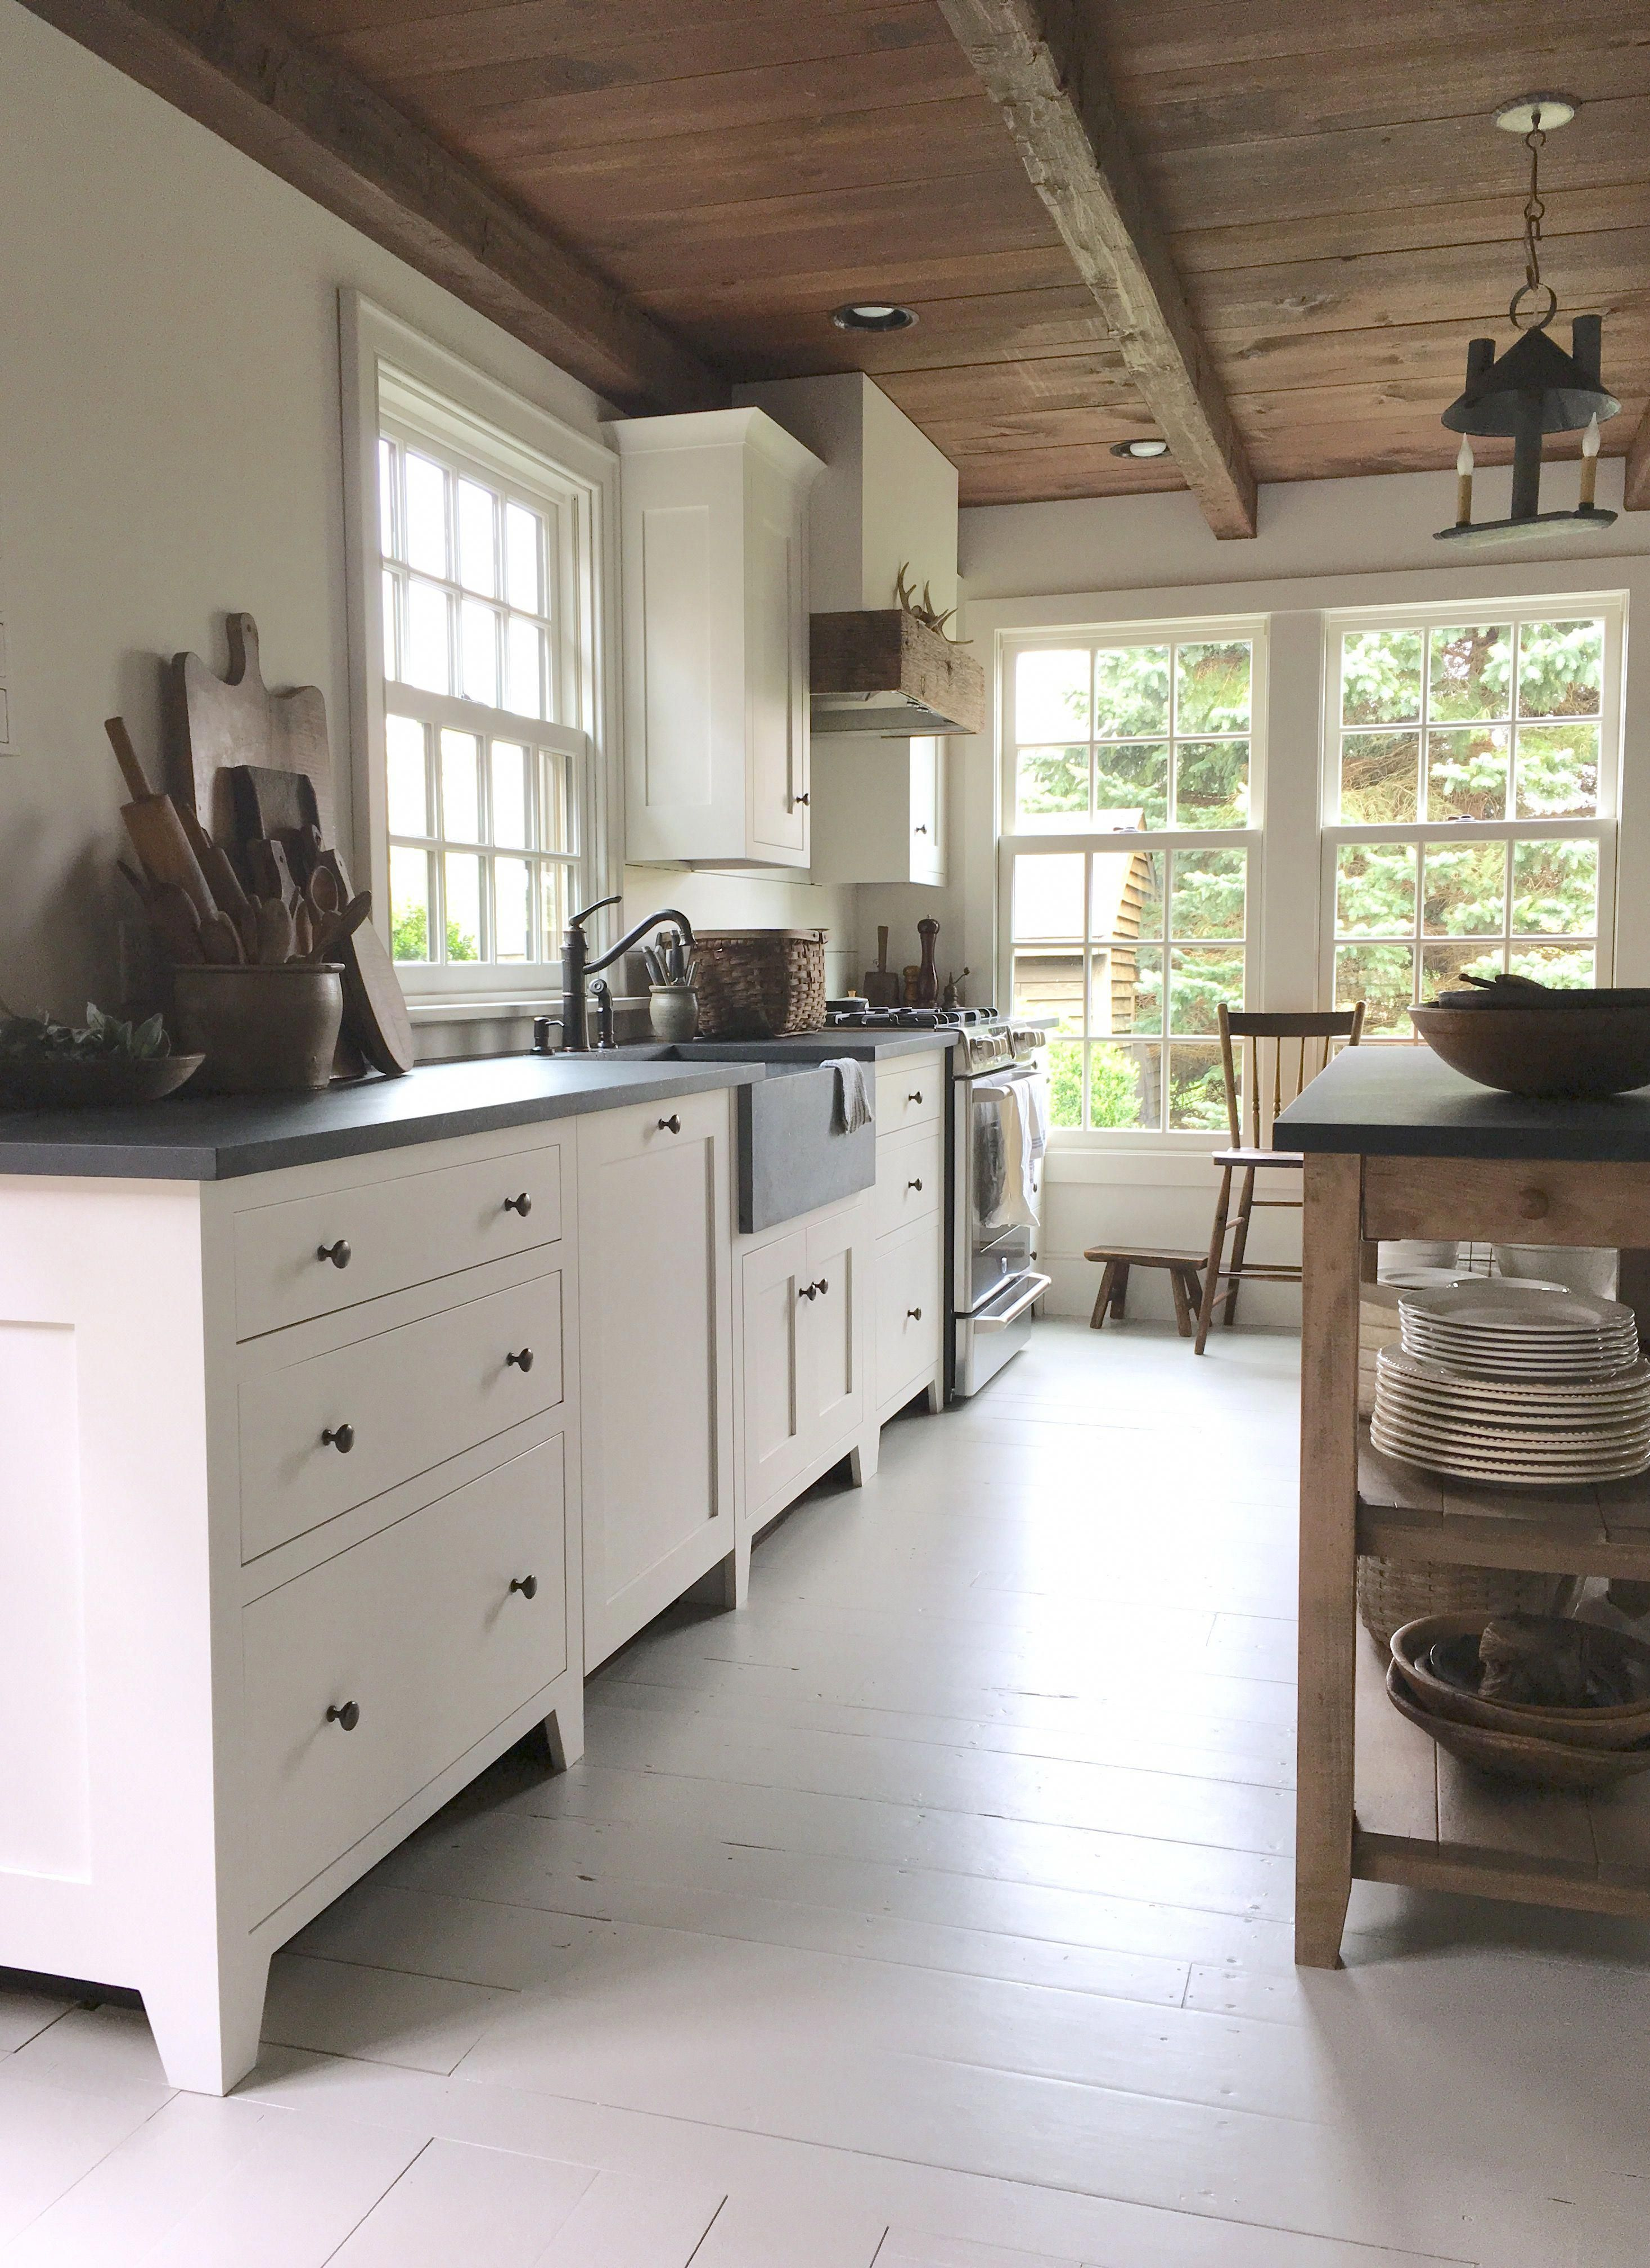 18 Enthralling Small Kitchen Remodel Corner Sink Ideas Small Cottage Kitchen Cottage Kitchen Design Kitchen Remodel Small